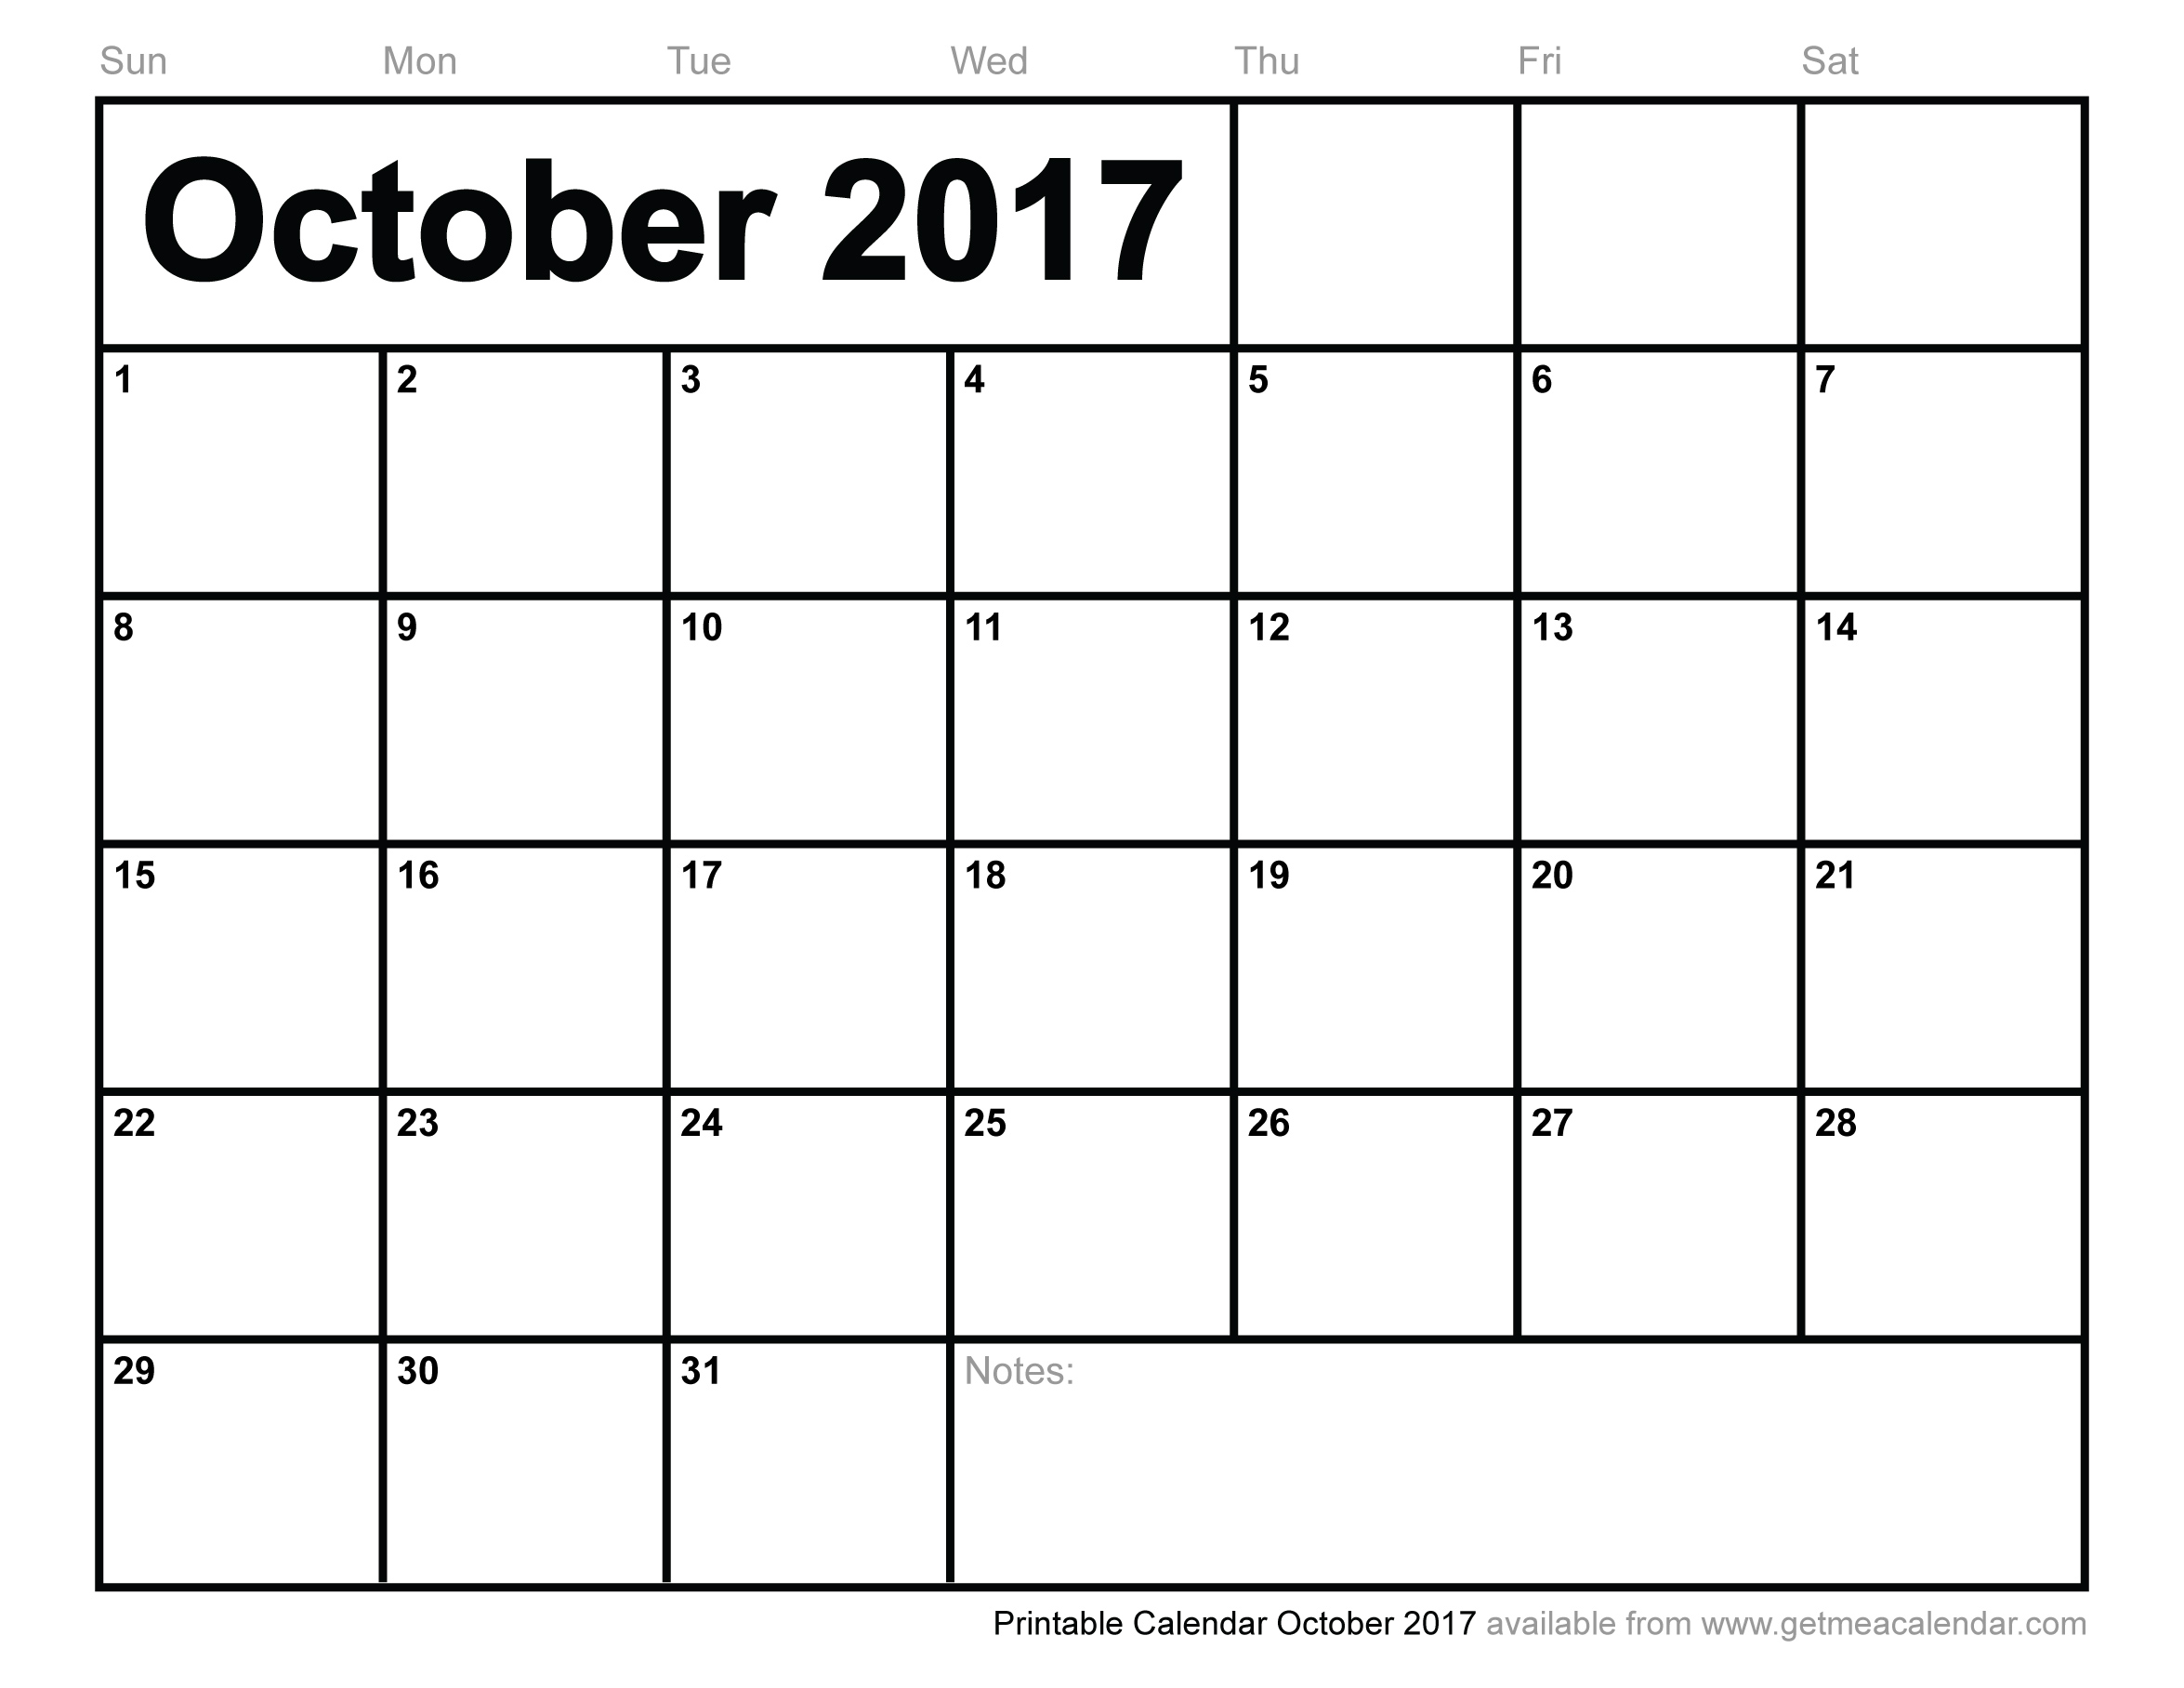 October 2017 Calendar Cute | printable calendar templates